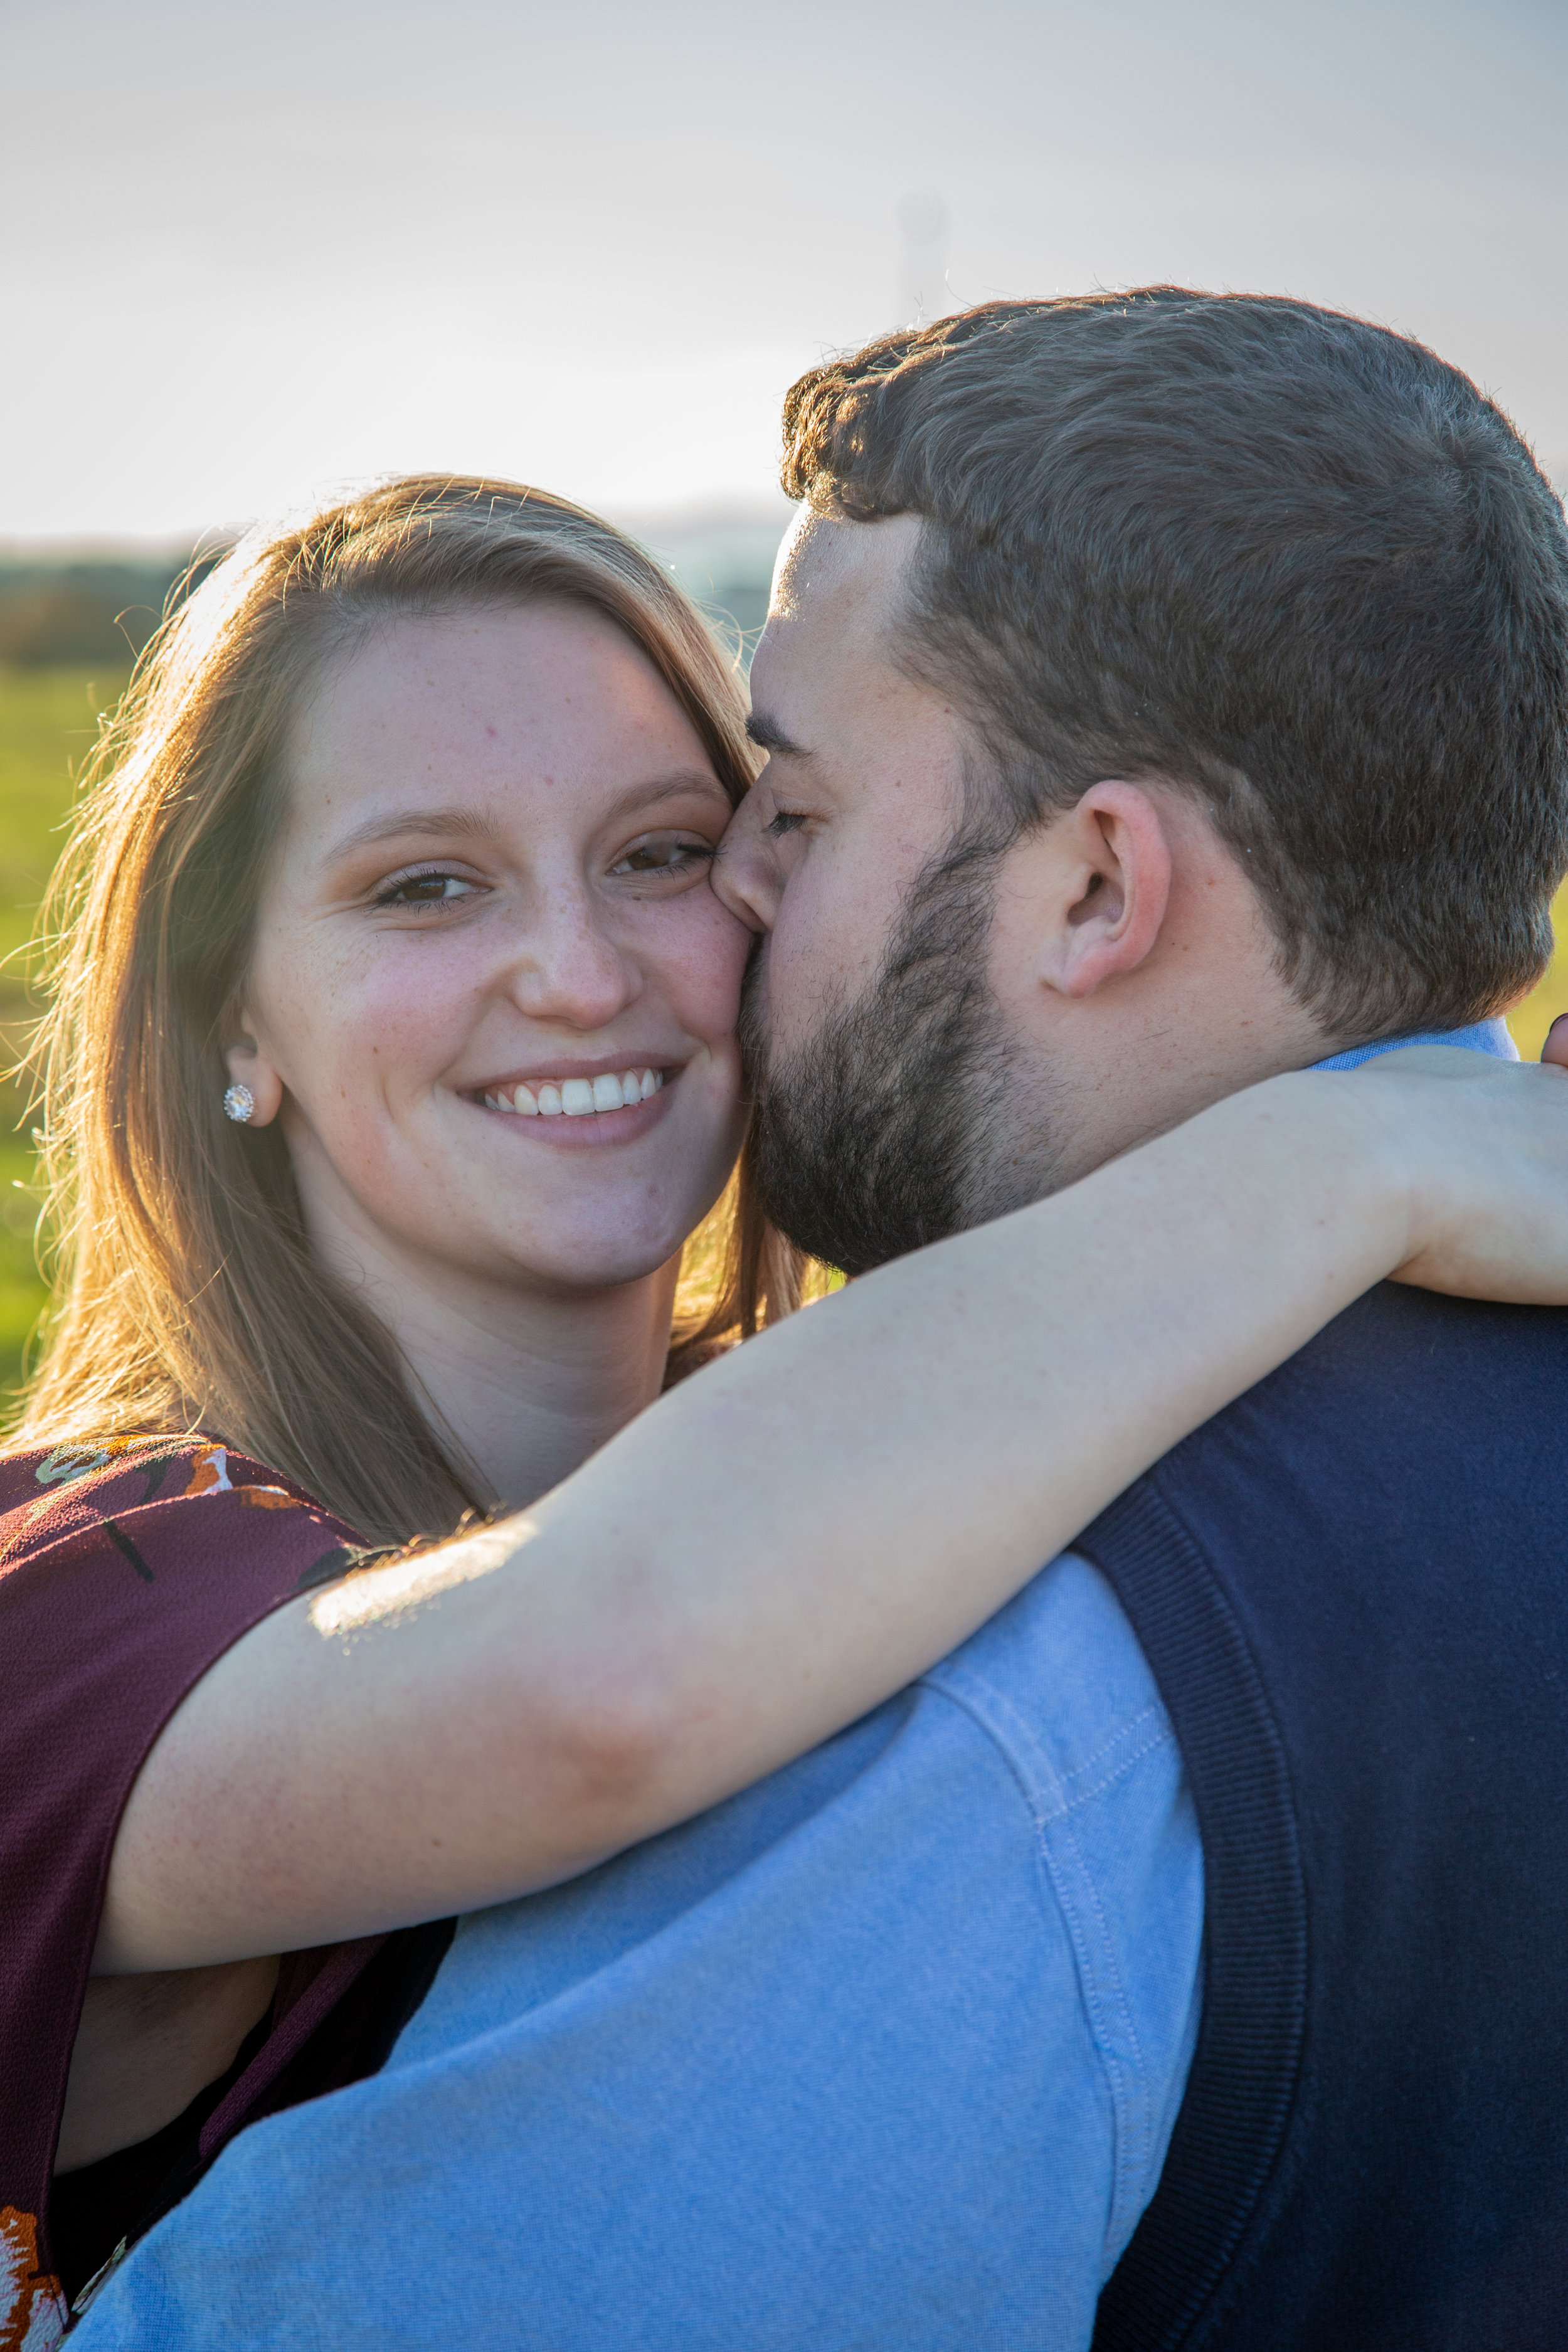 Sunset-Roanoke-shakers-field-flare-airport-love-together-virginia-photography-shoot-together-smiling